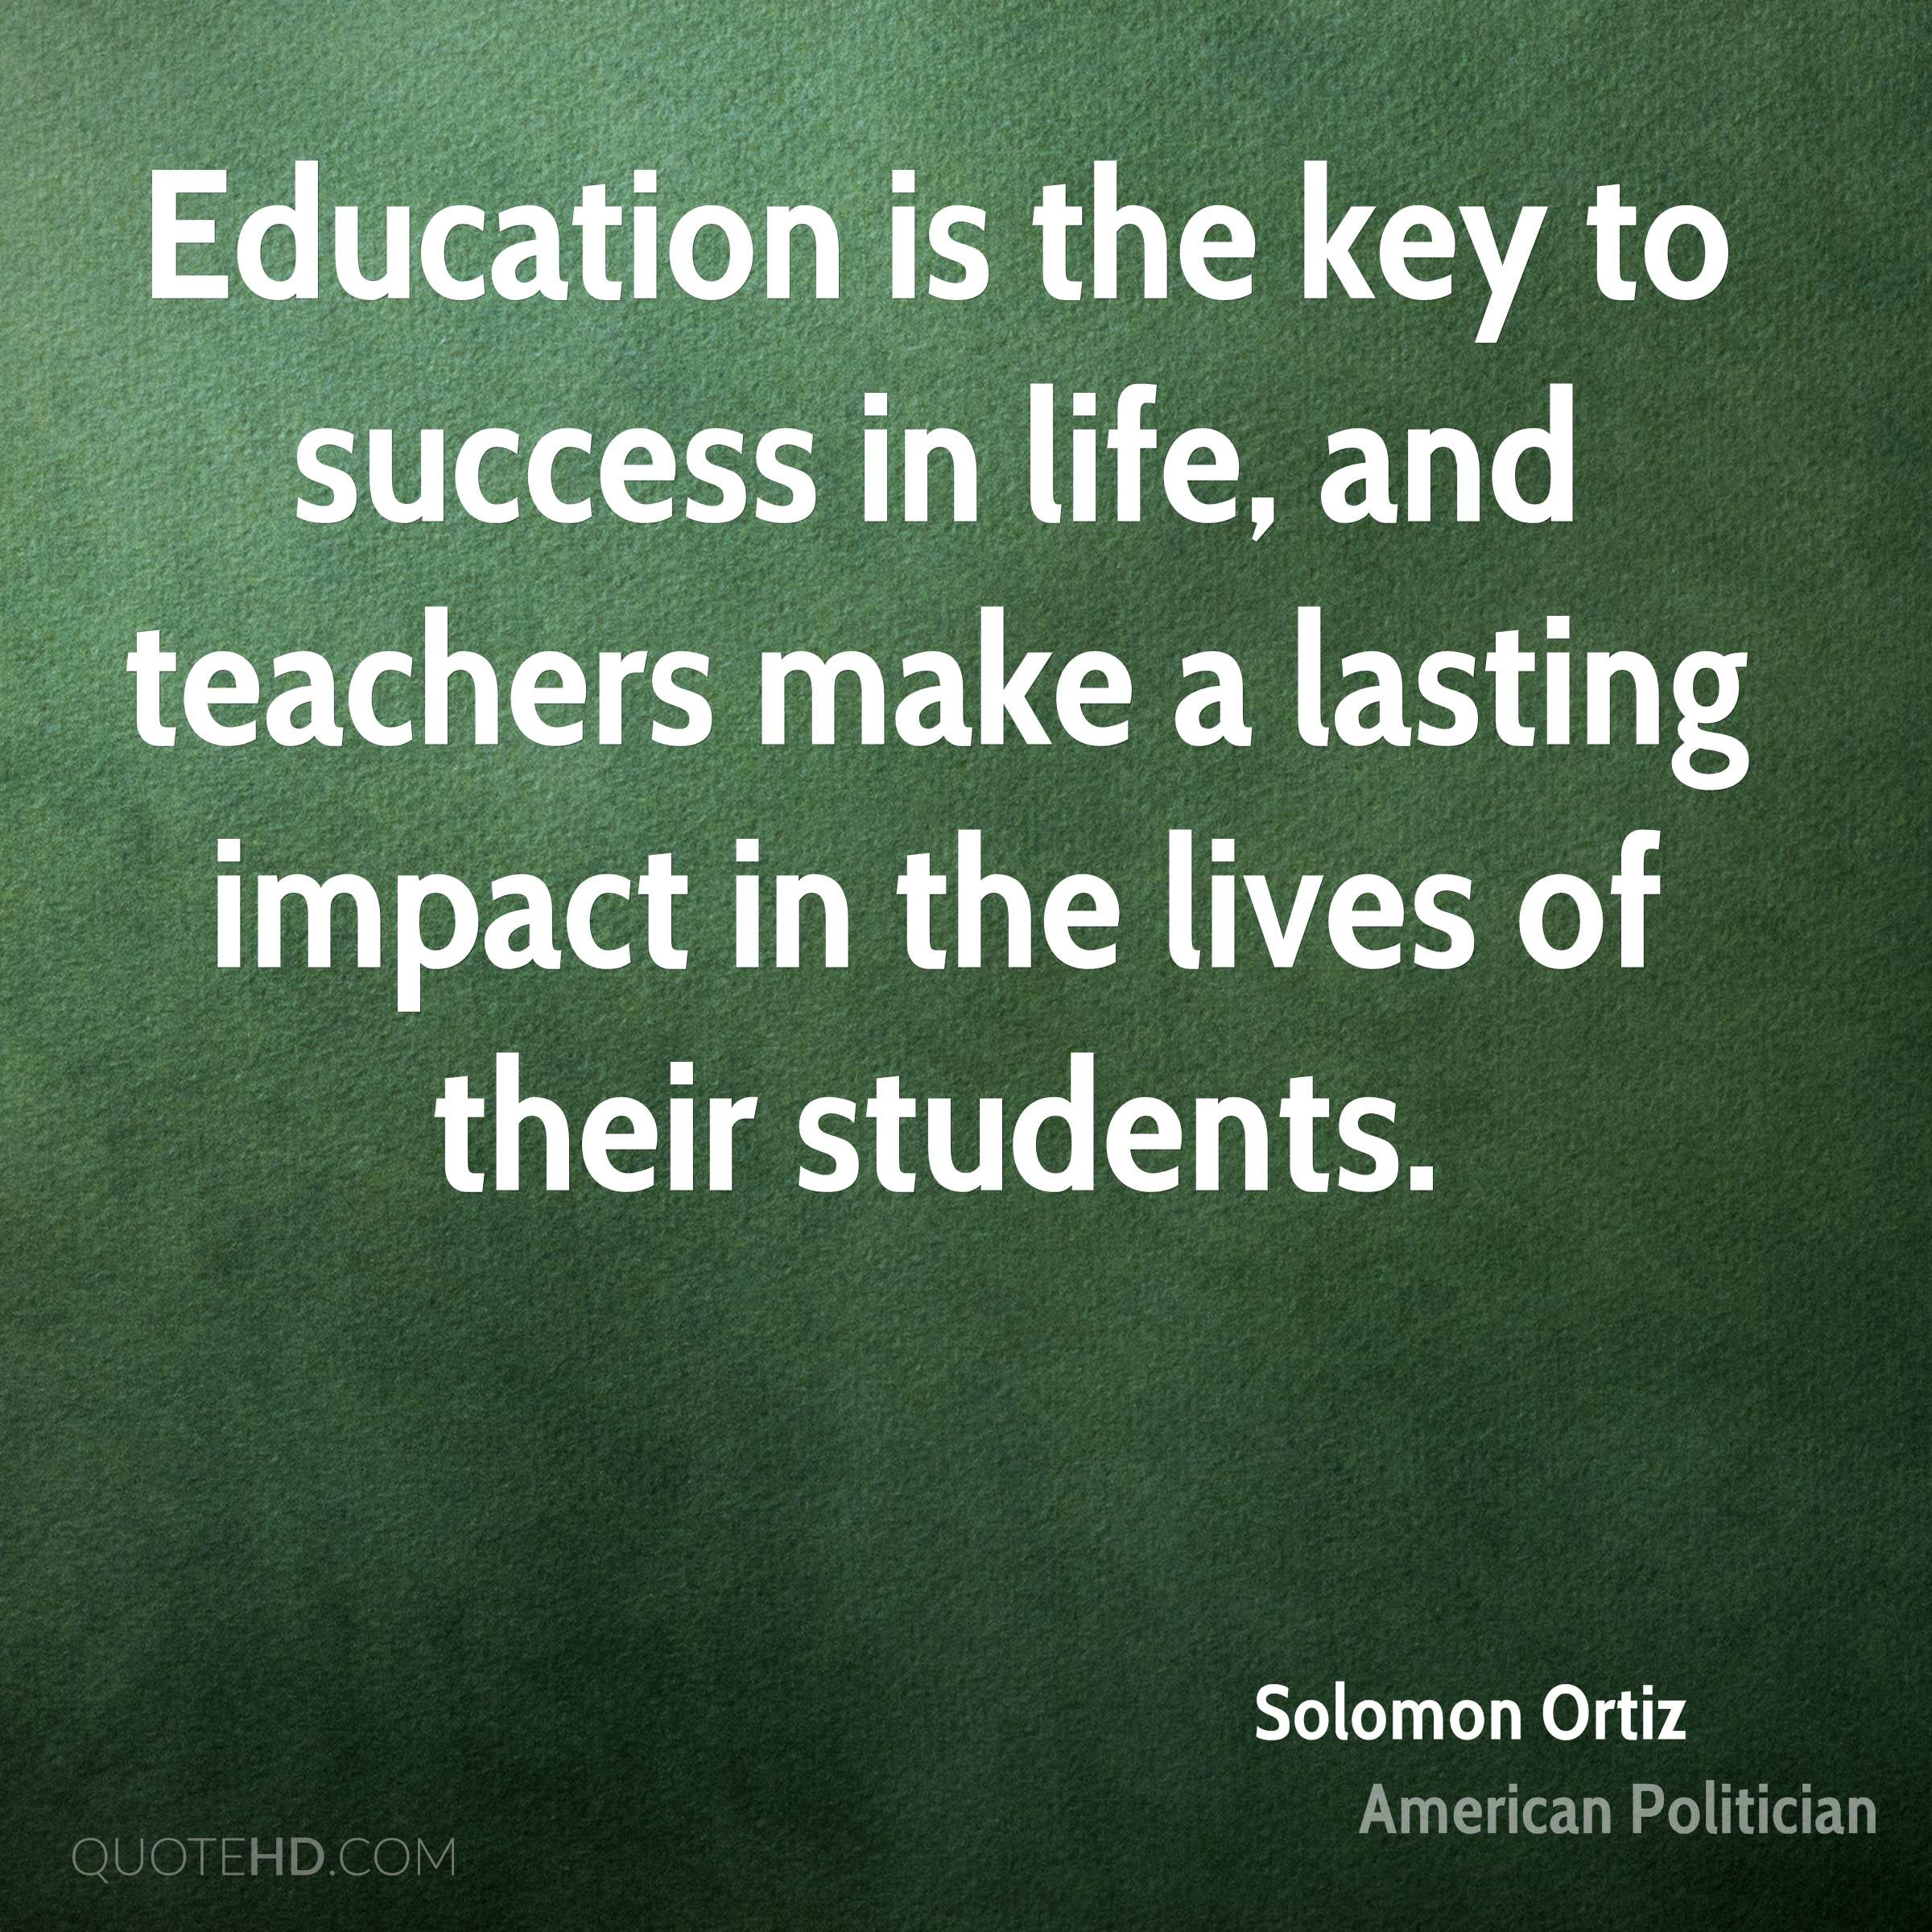 Thoughts on education and success